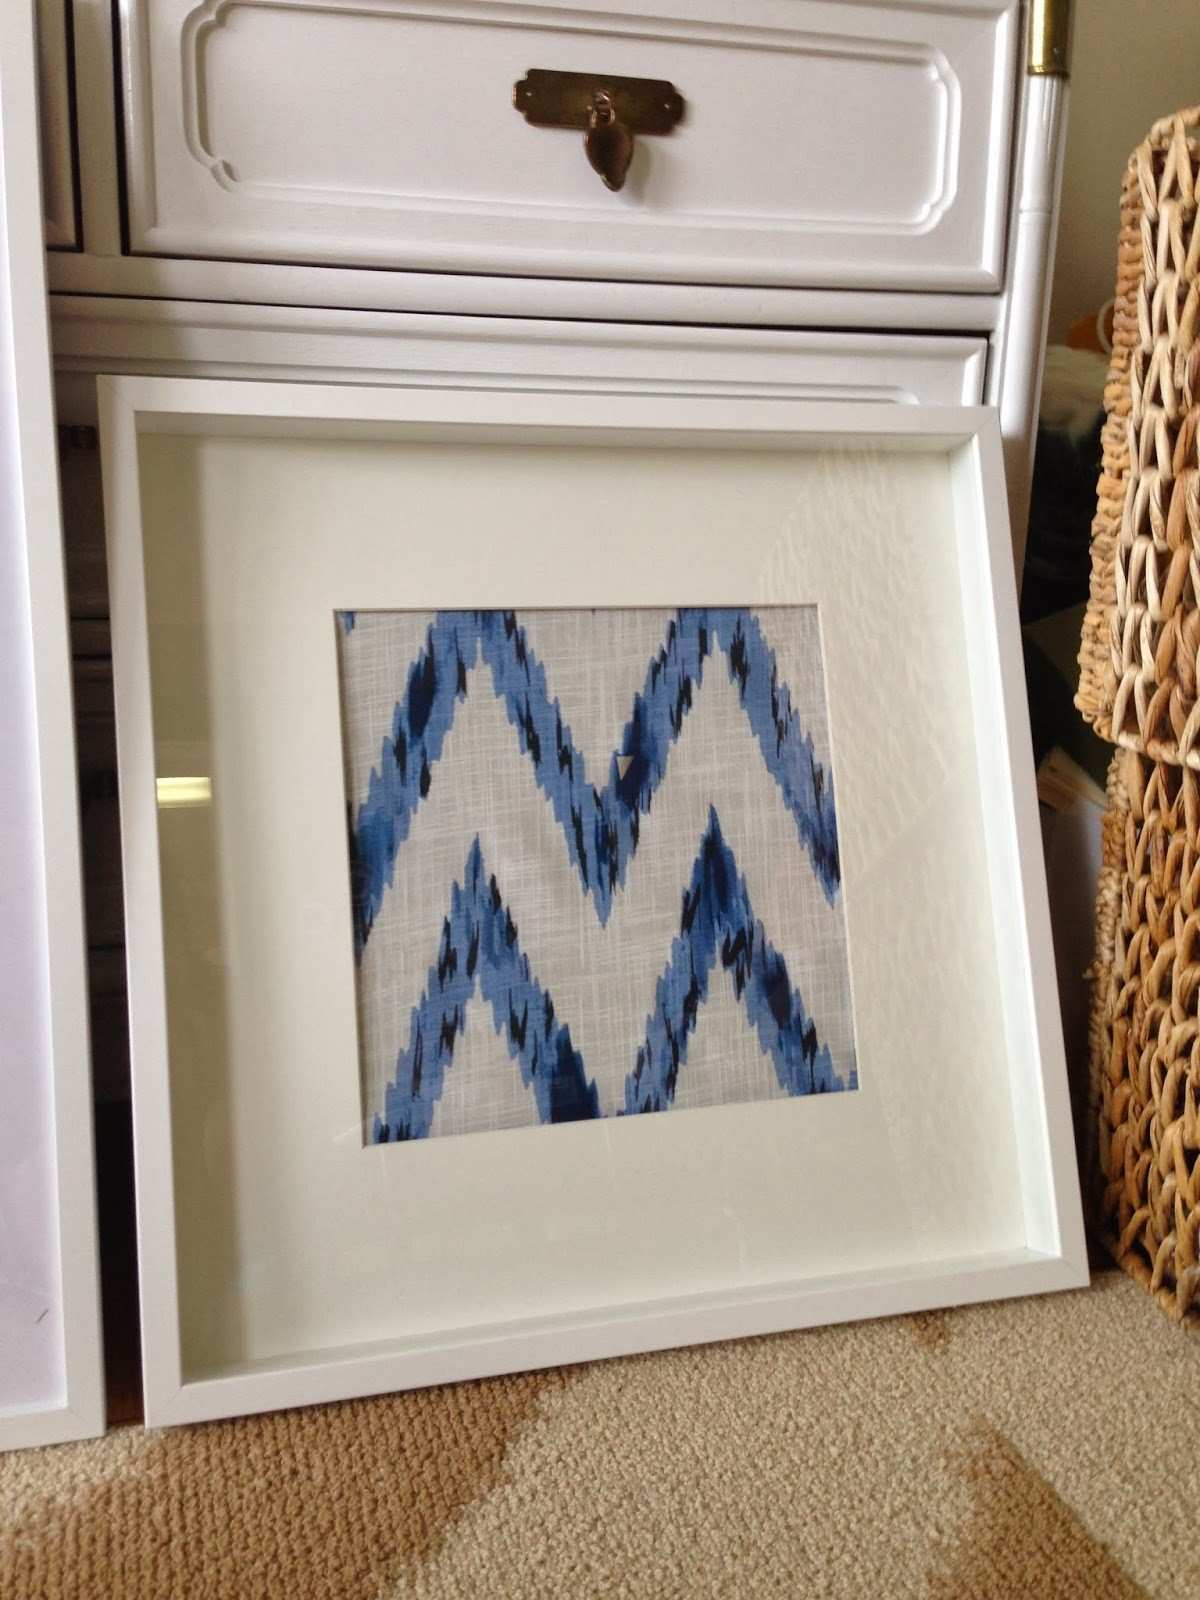 Ikat Print Wall Art Luxury Sanity Fair $24 Pottery Barn Hack